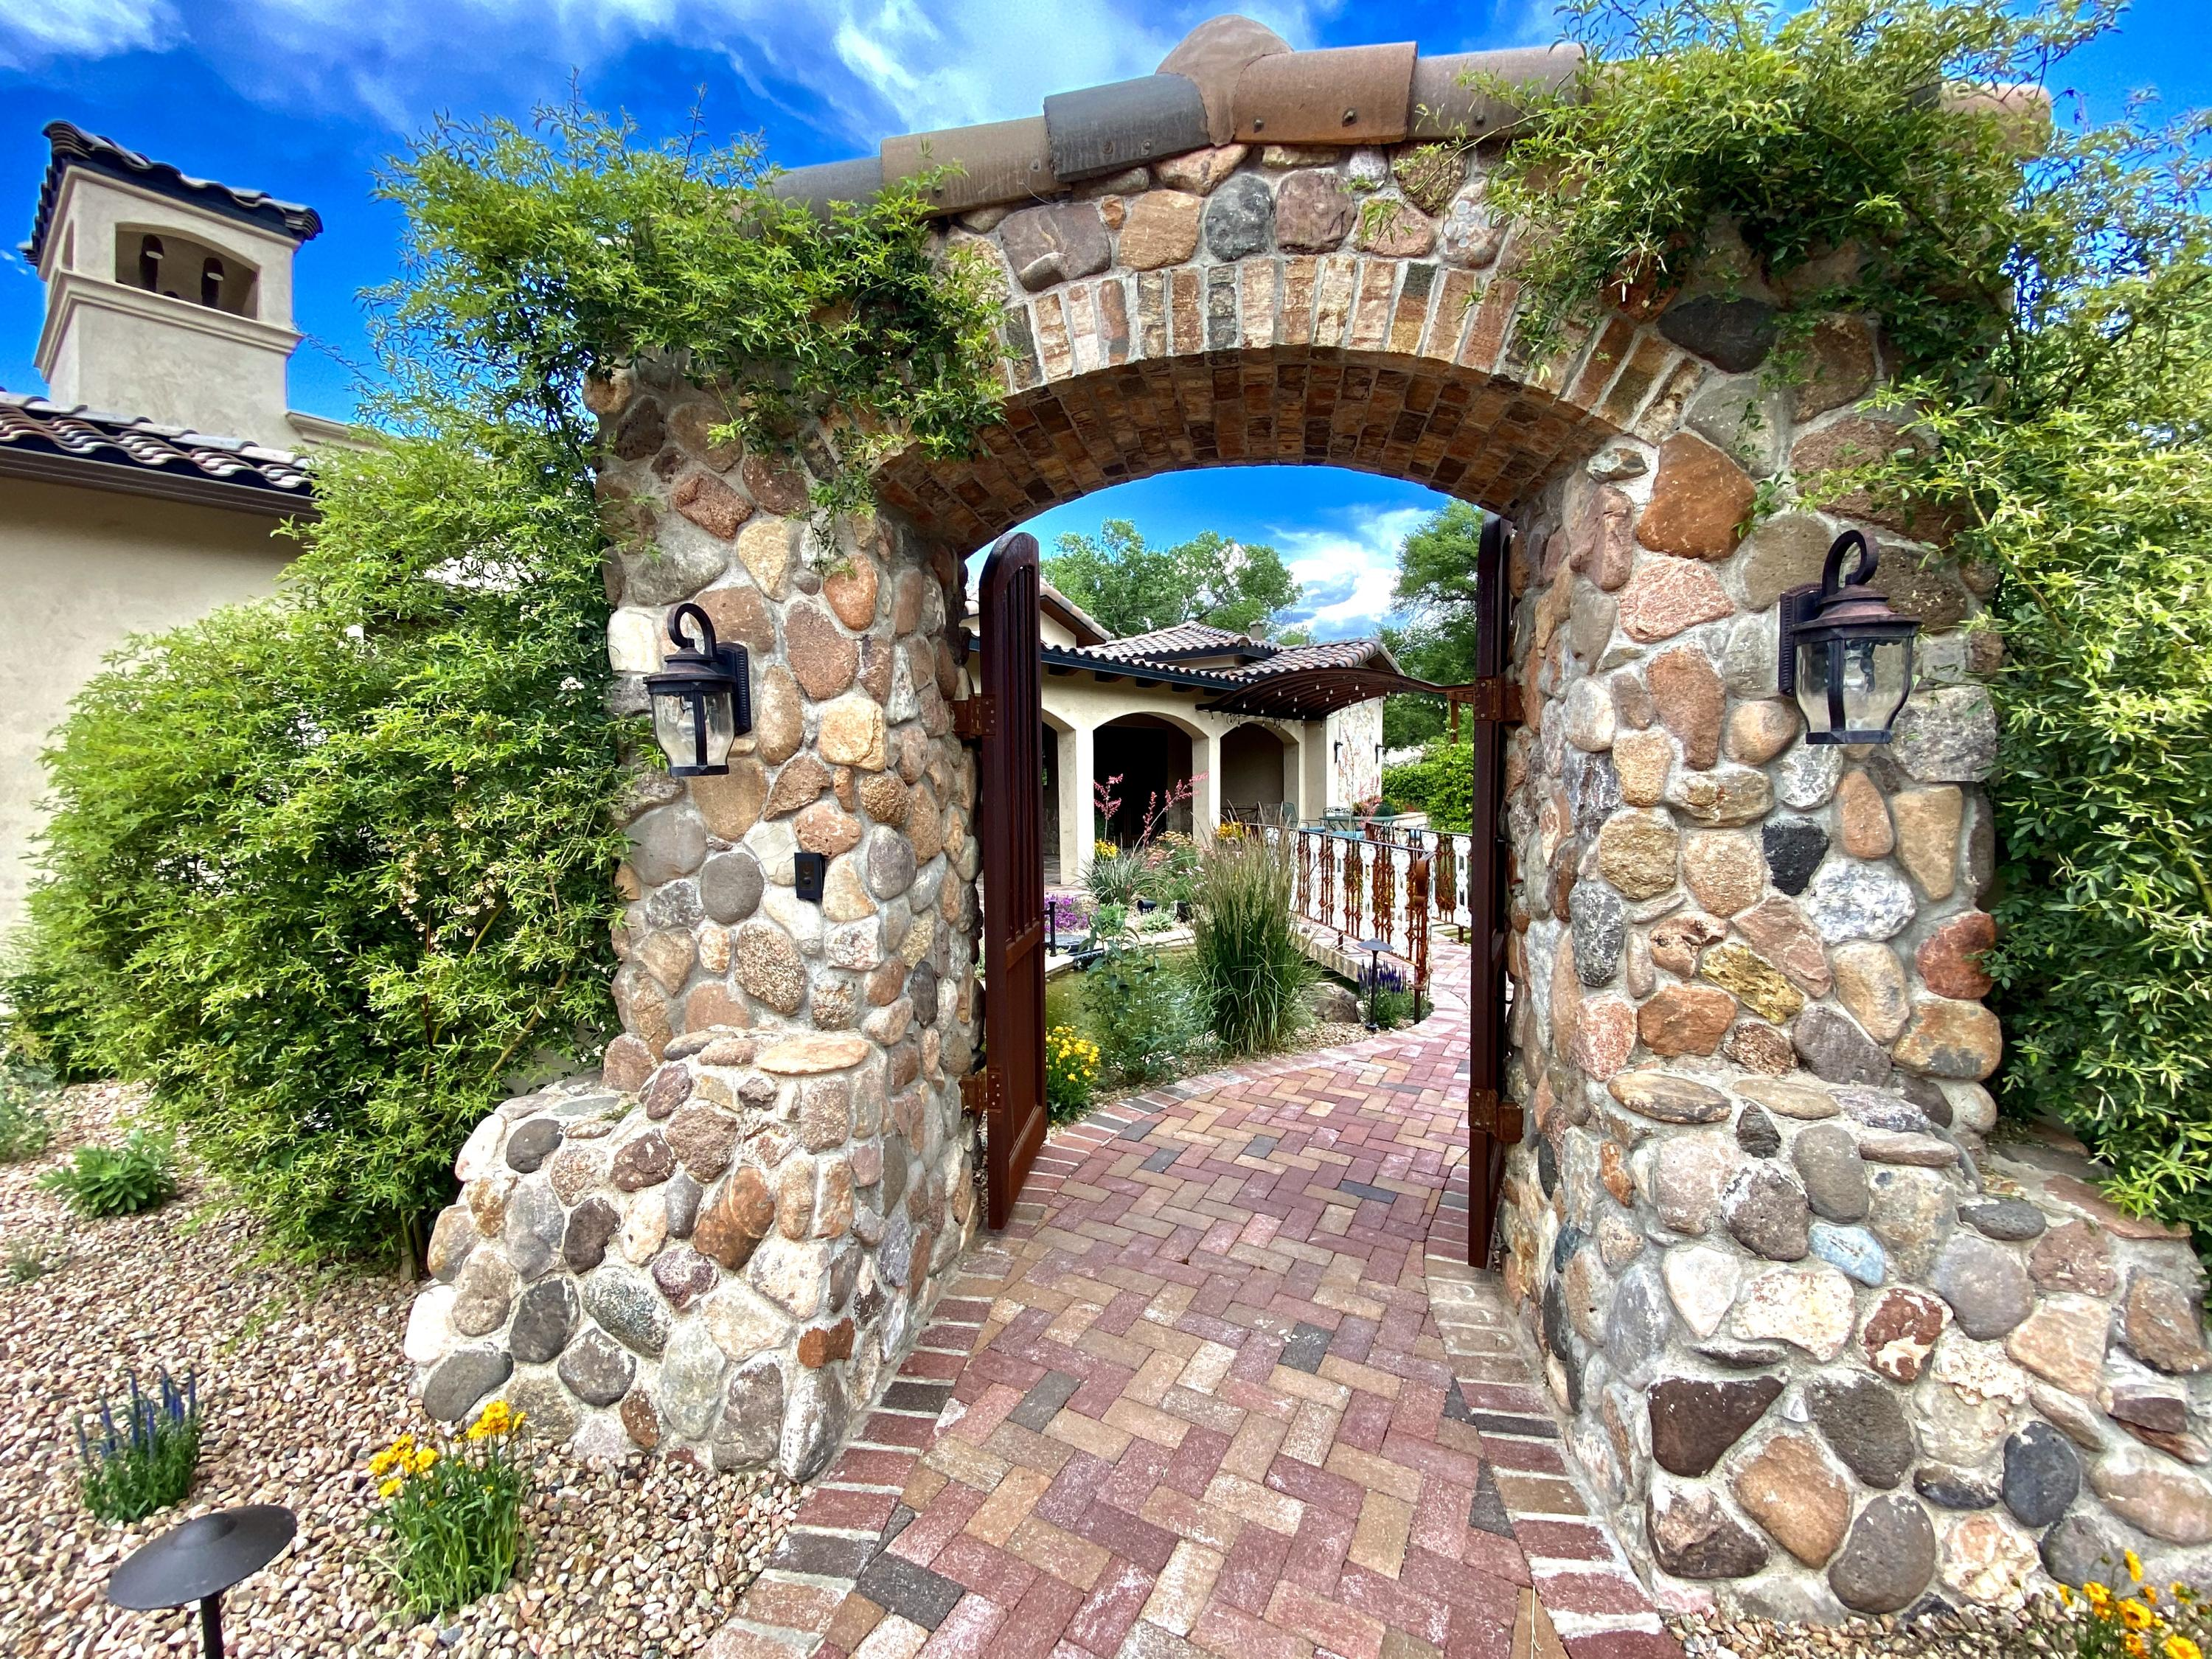 909 TERRA BELLA Court NW Property Photo - Albuquerque, NM real estate listing